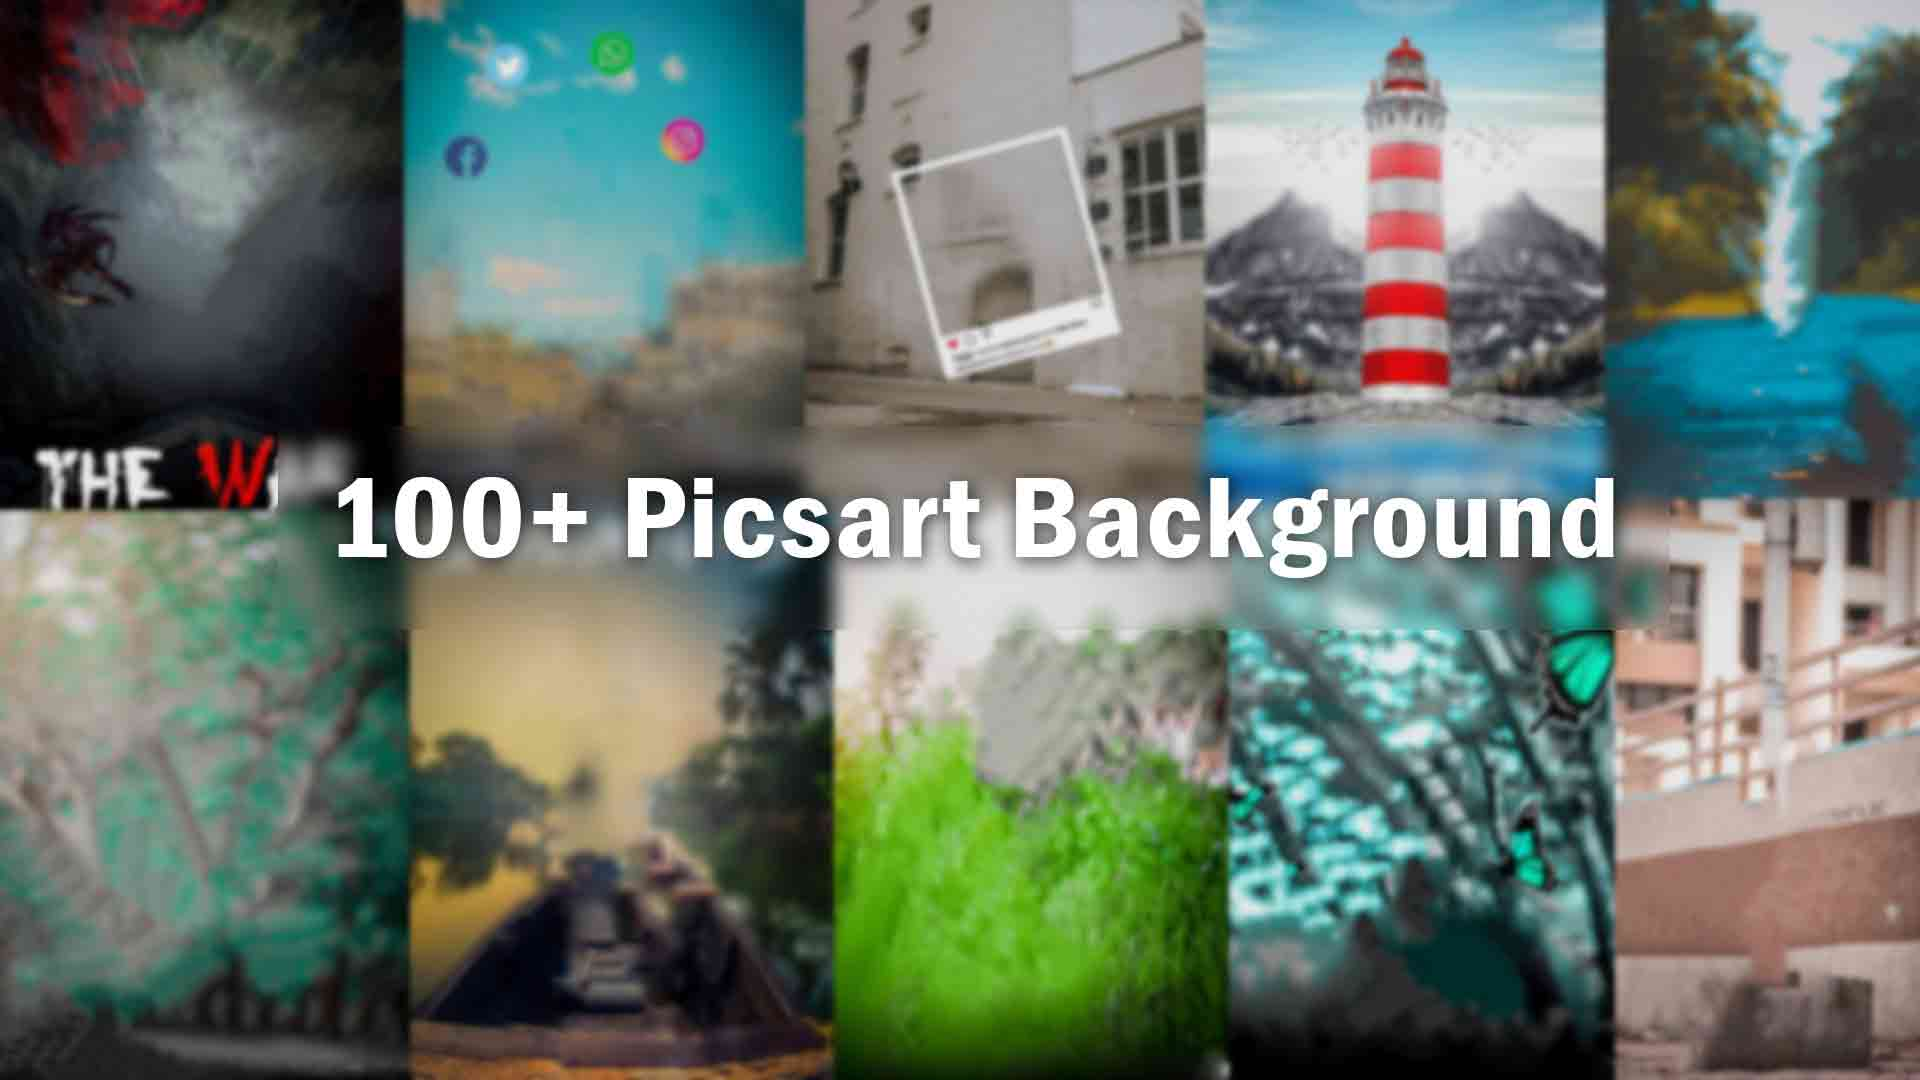 1500 Picsart Background Hd Images 2021 For Editing Download Picsart enables users to take and edit pictures, draw with layers, and share their. 1500 picsart background hd images 2021